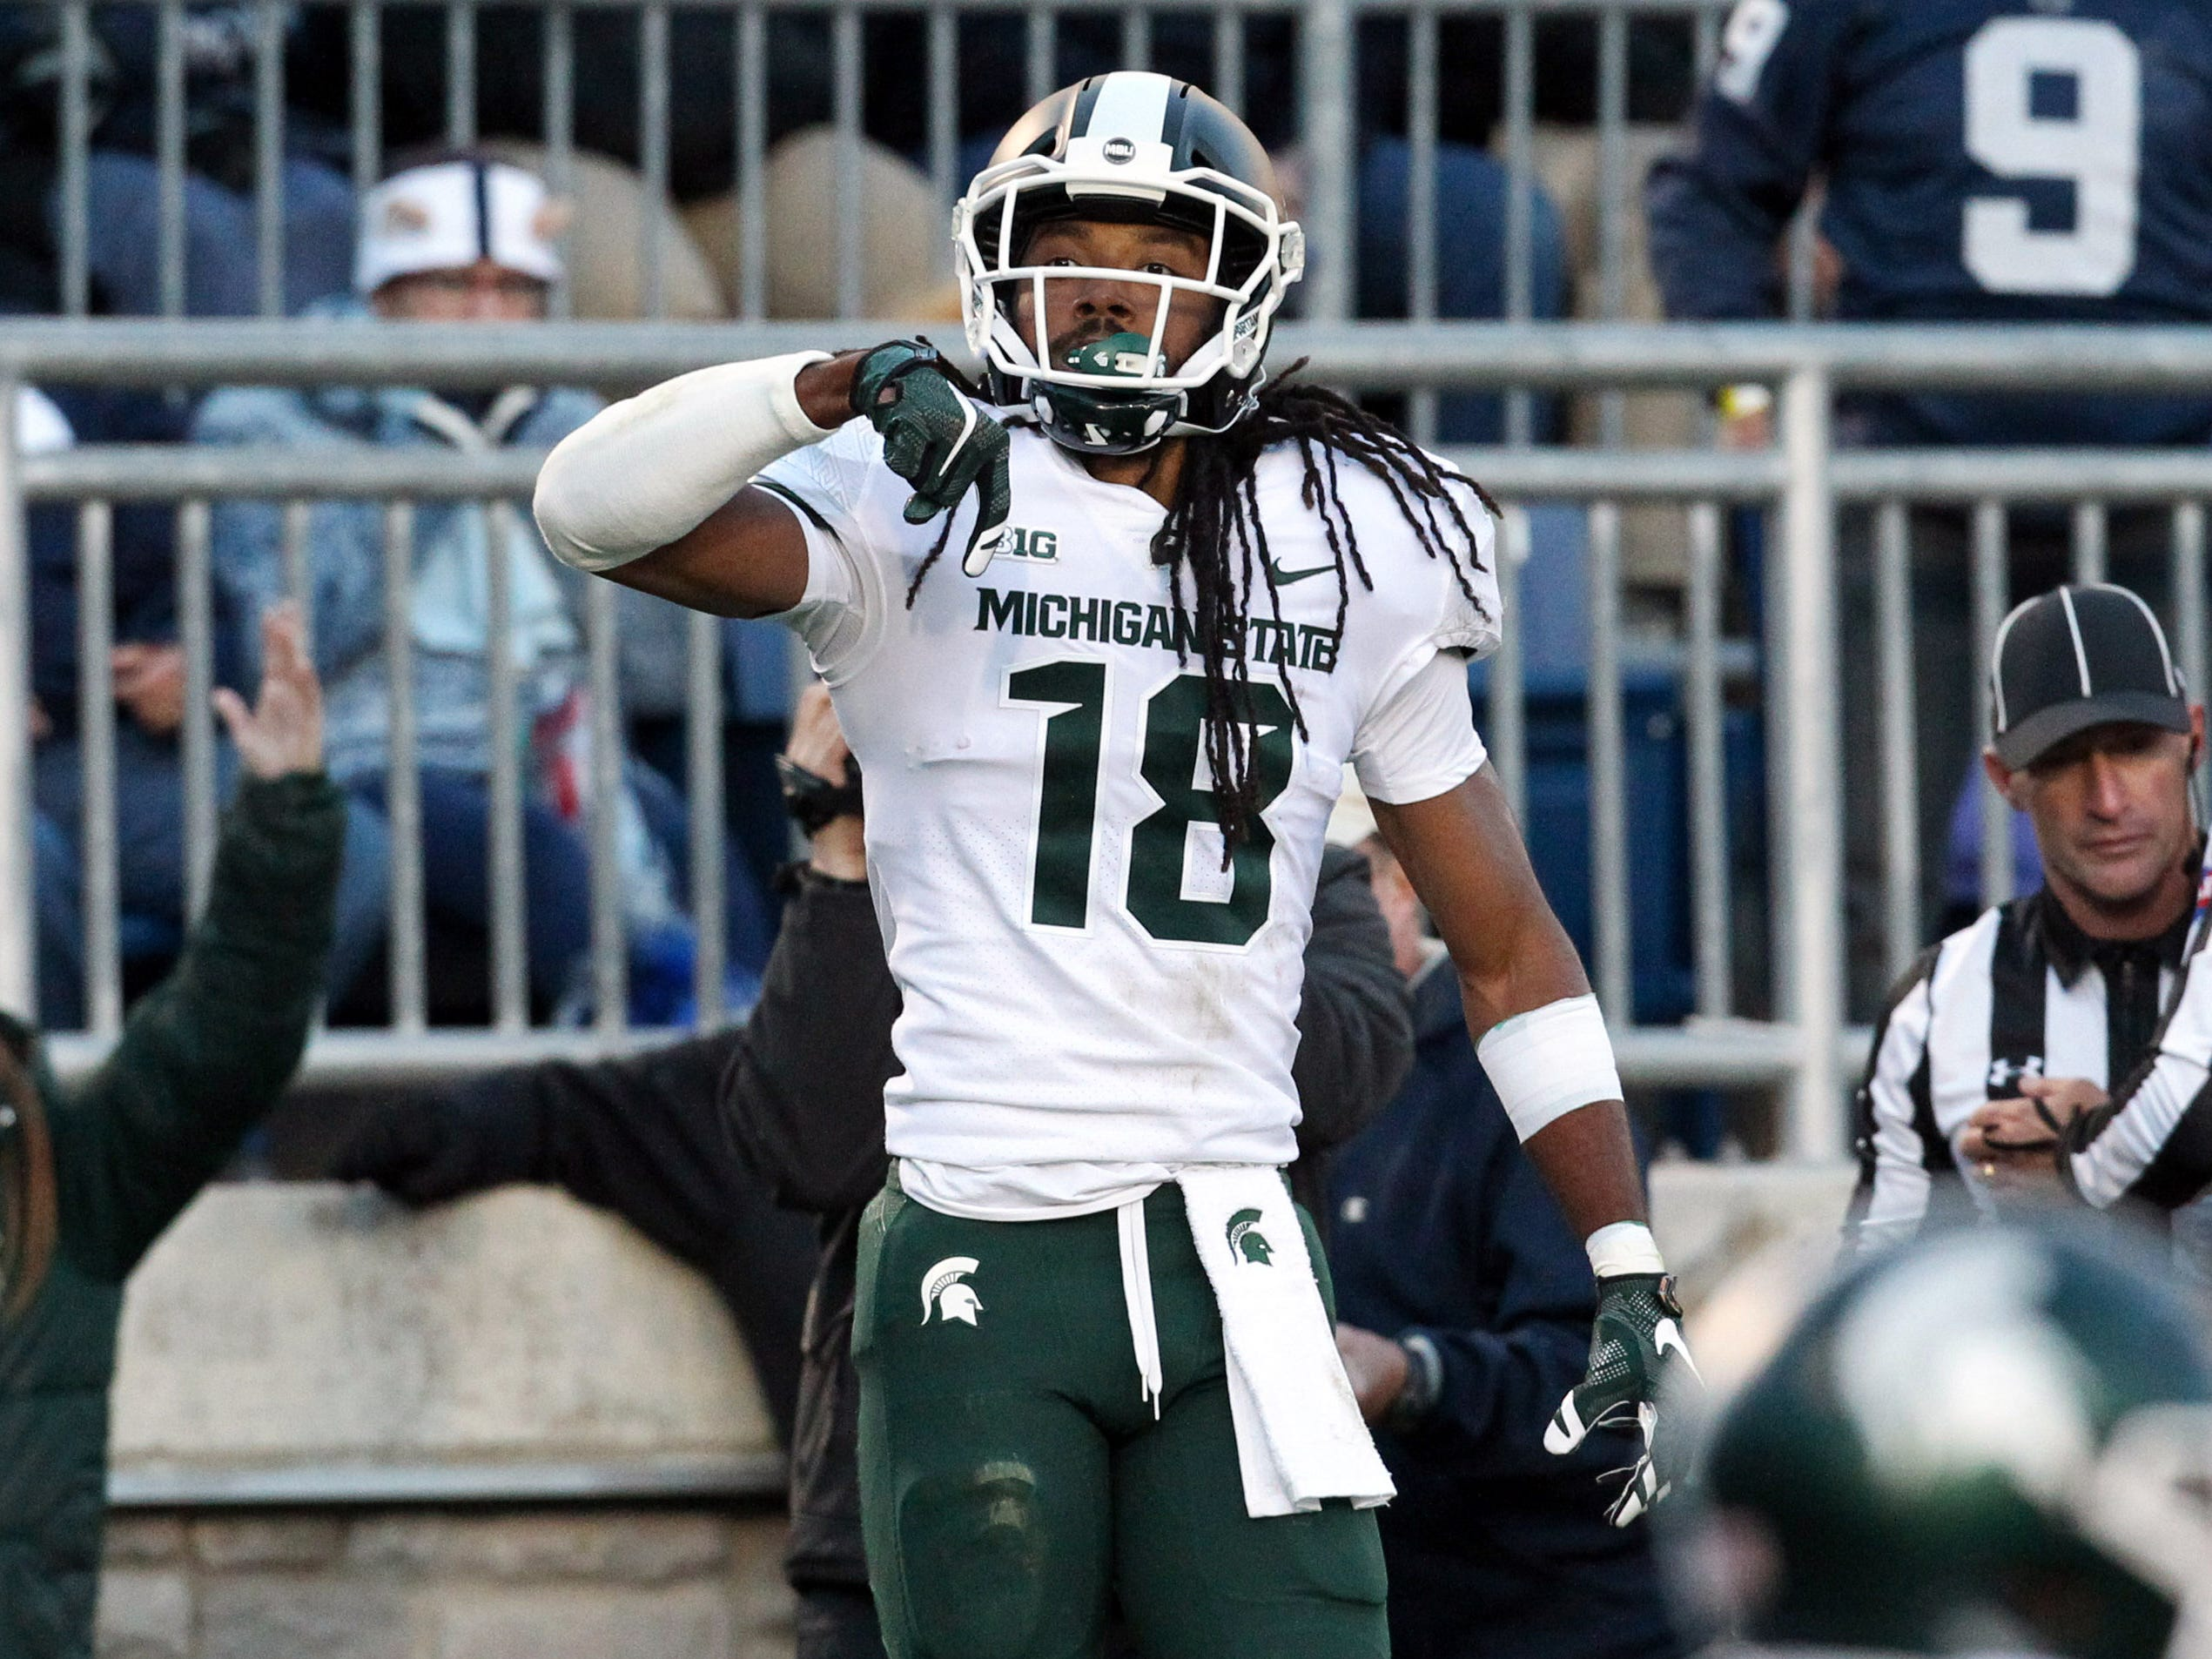 Michigan State Spartans wide receiver Felton Davis III (18) reacts after scoring a touchdown during the third quarter against the Penn State Nittany Lions at Beaver Stadium. Michigan State defeated Penn State 21-17.